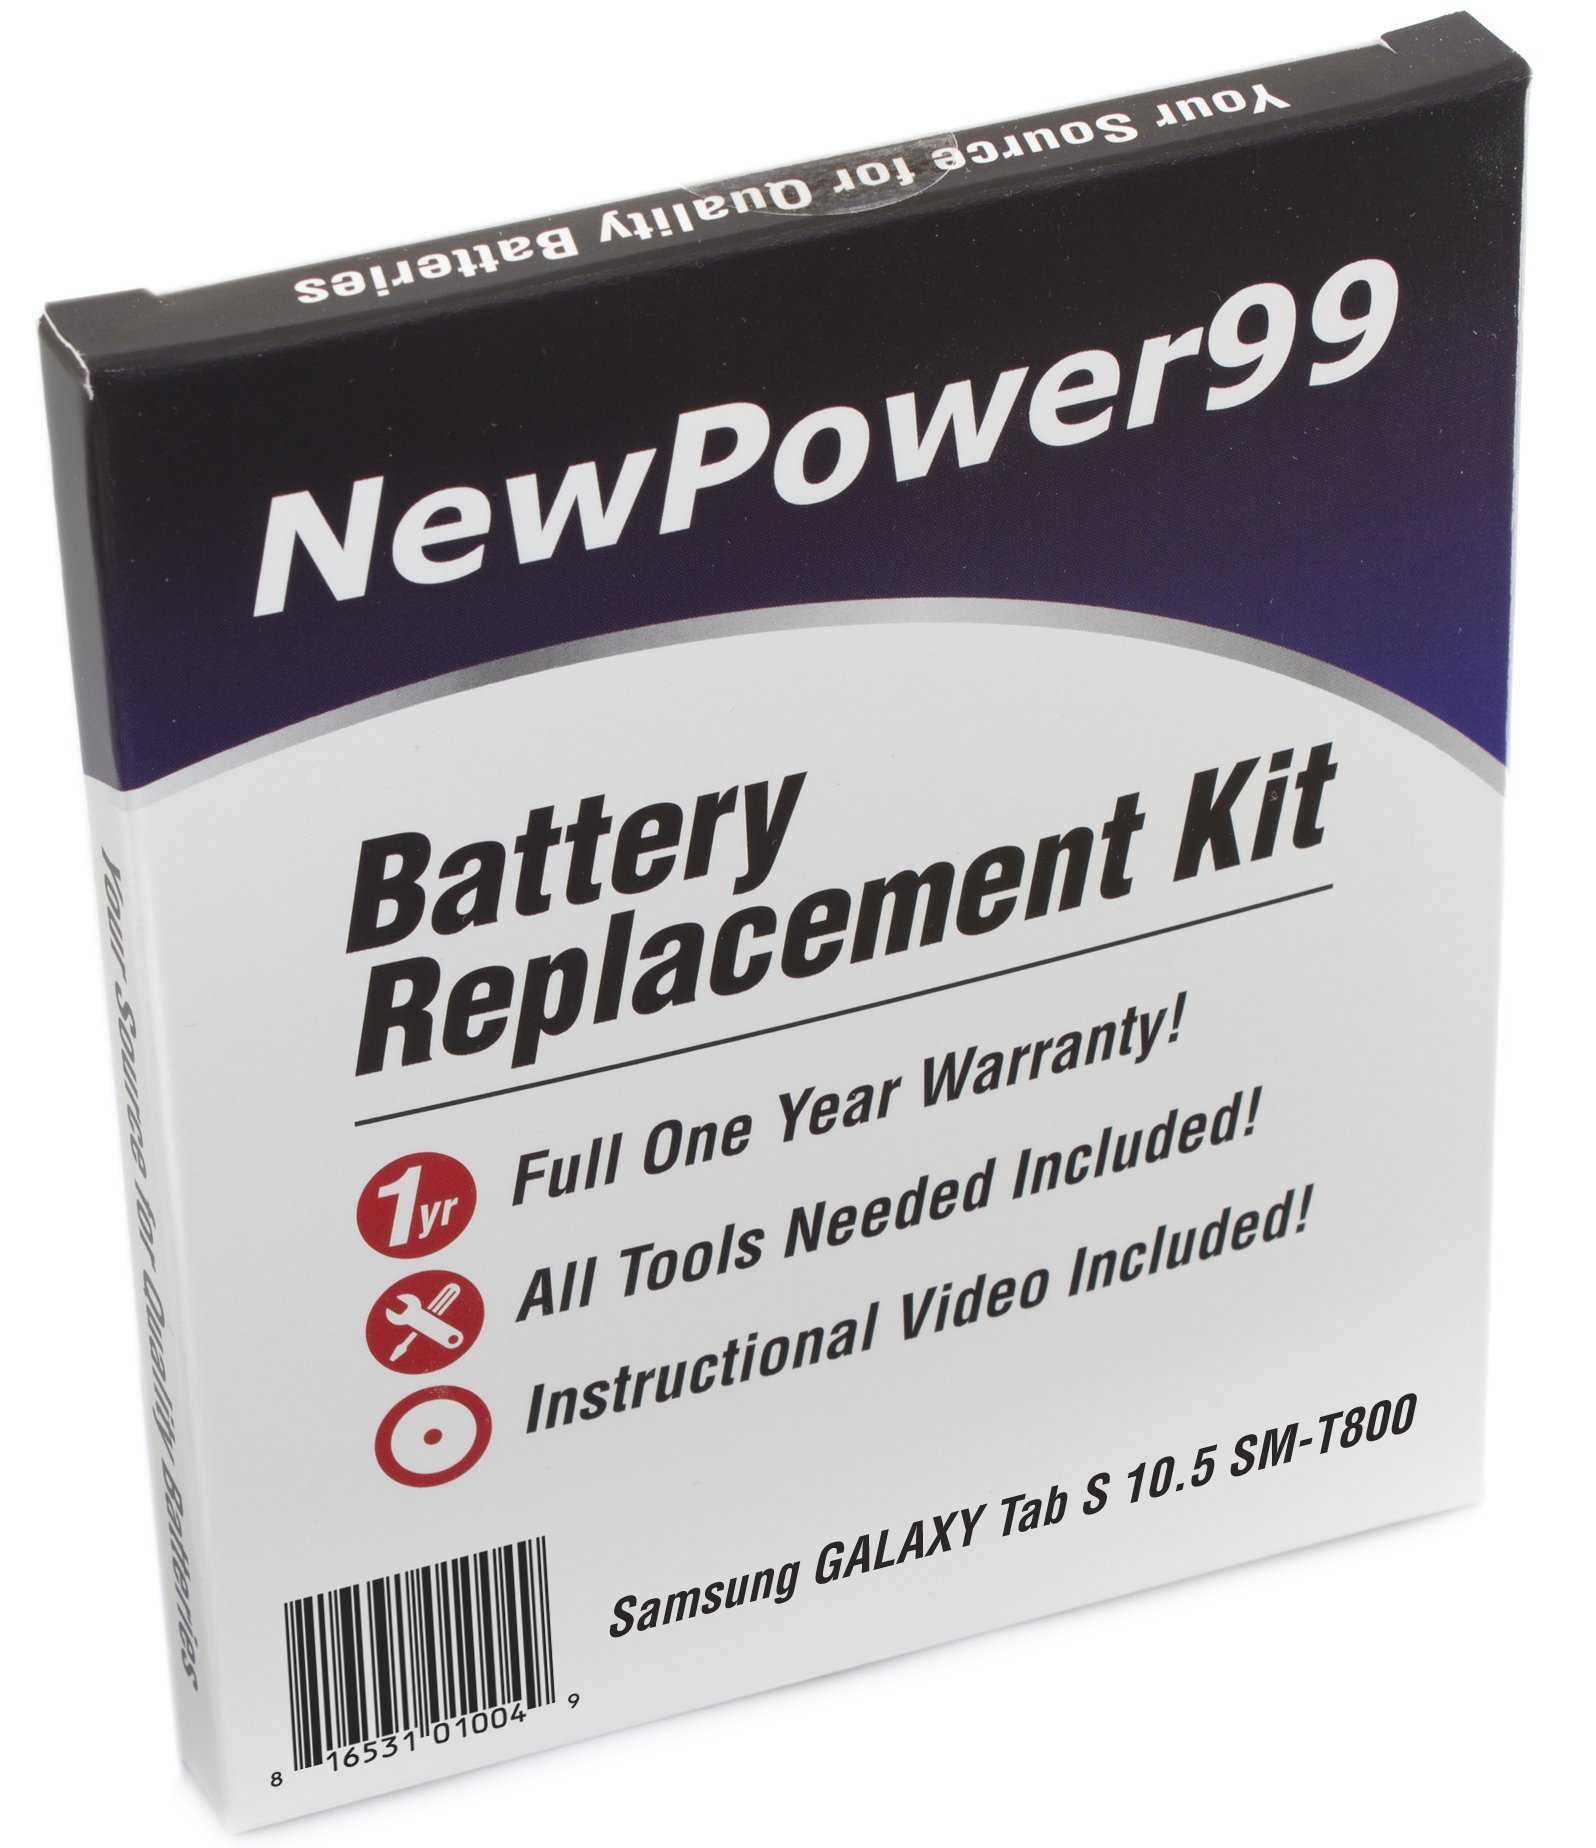 NewPower99 Battery Replacement Kit with Battery, Instructions and Tools compatible with Samsung GALAXY Tab S 10.5 SM-T800  by NewPower99